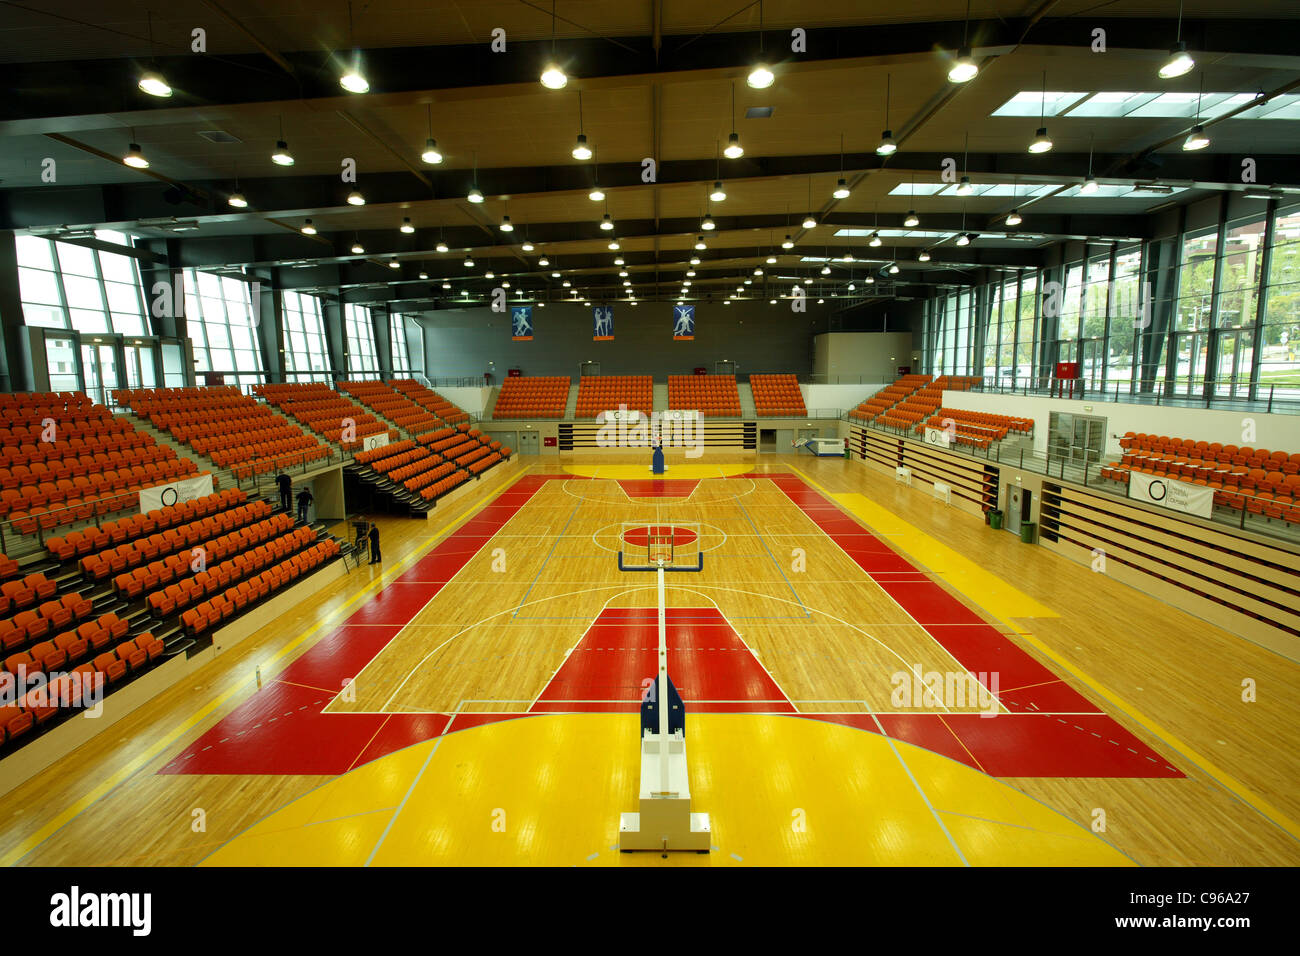 Basketball court at indoor sports arena in Coimbra, Portugal Stock ...